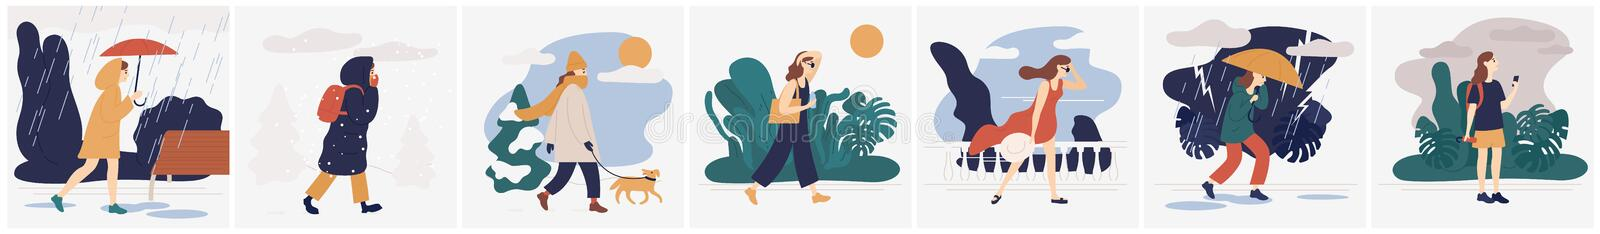 Collection of girl in various weather conditions. Bundle of young woman wearing seasonal clothes and walking on street. In rain, snowfall, summer heat. Colorful stock illustration